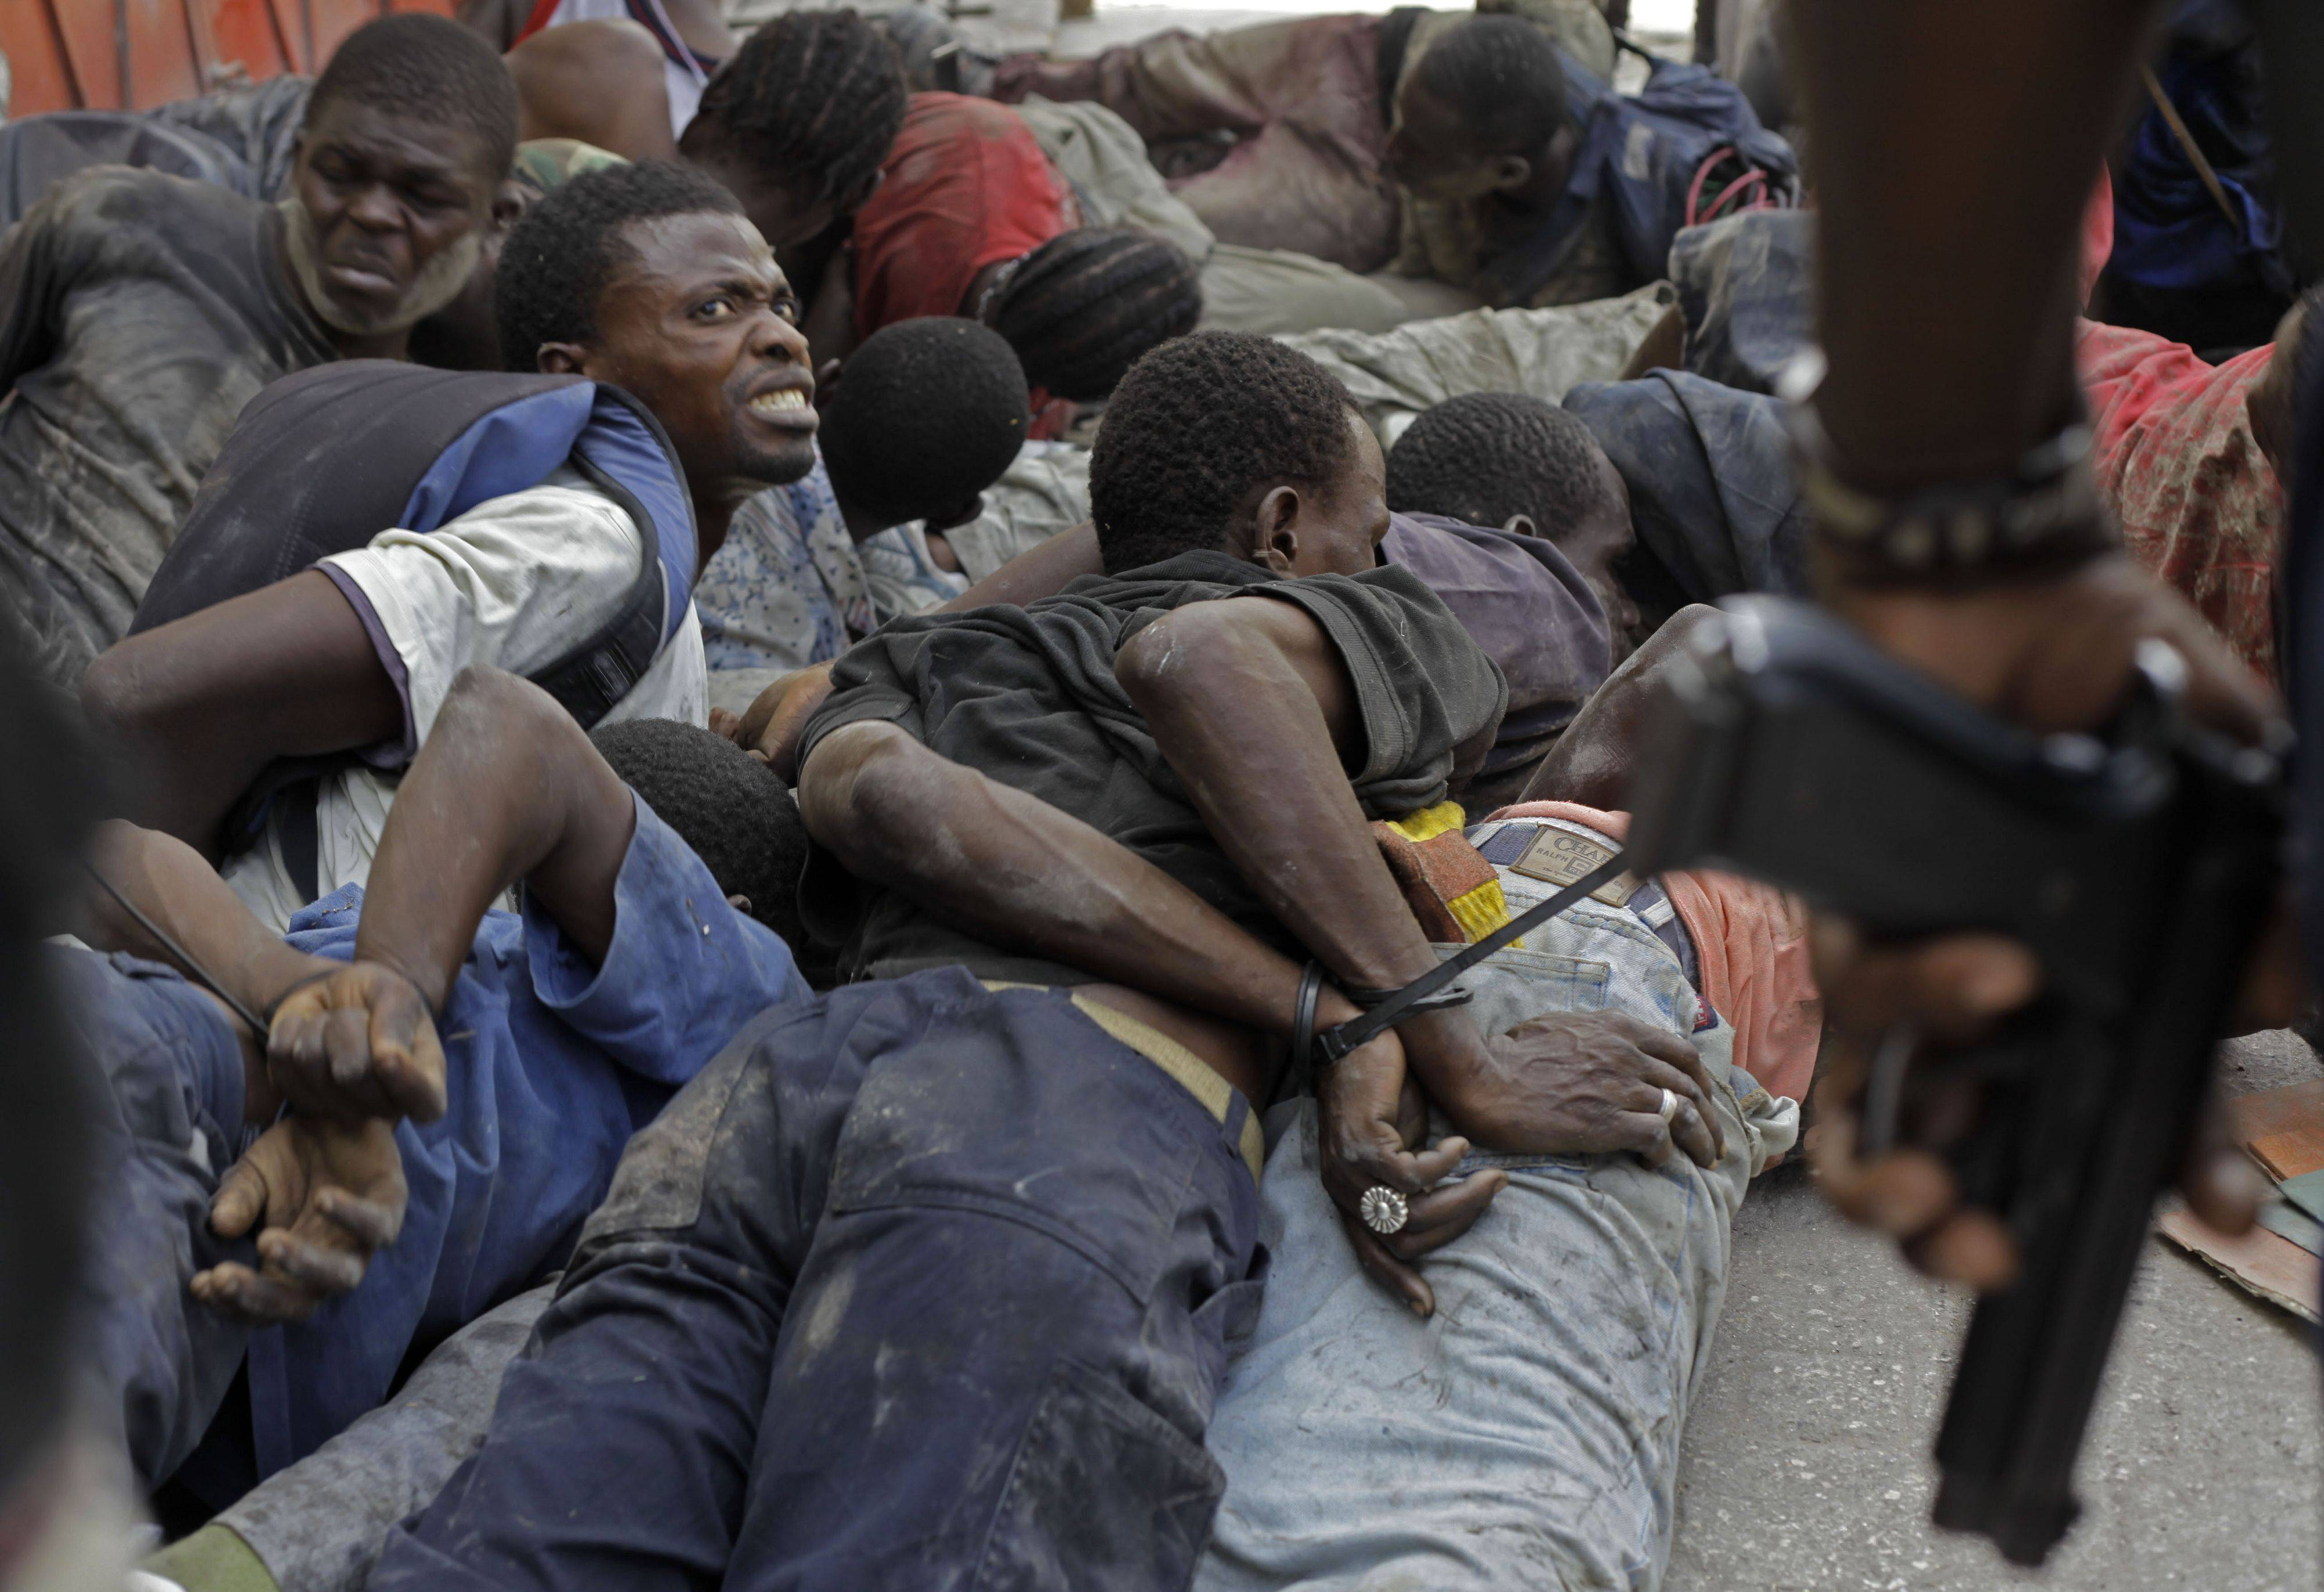 In this Feb. 6, 2010 file photo, a suspected looter looks at a Haitian police officer as he lies on the ground with his hands tied behind his back with other detained men after being caught in a bank in the aftermath of Haiti's earthquake in Port-au-Prince.